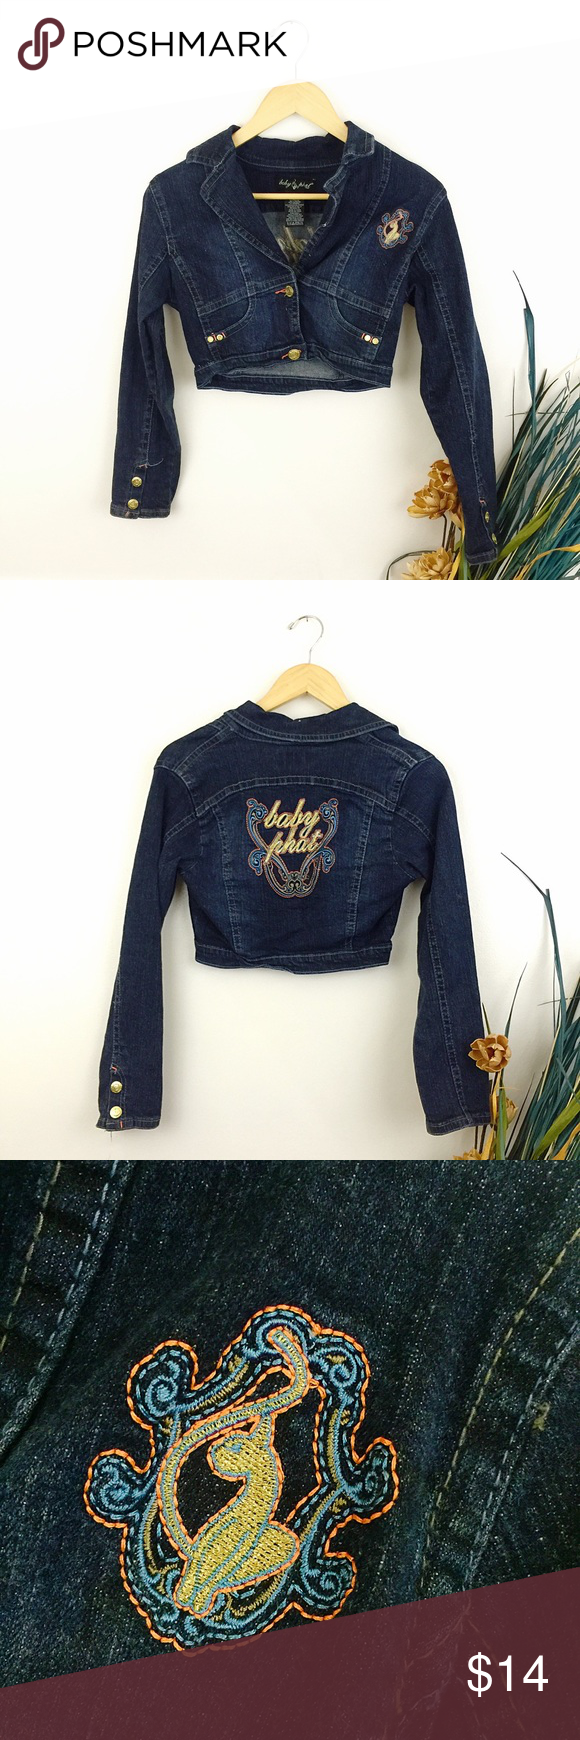 595e609b3 Girls BABY PHAT Cropped Denim Jean Jacket Sz L Girls BABY PHAT Cropped Denim  Jean Jacket